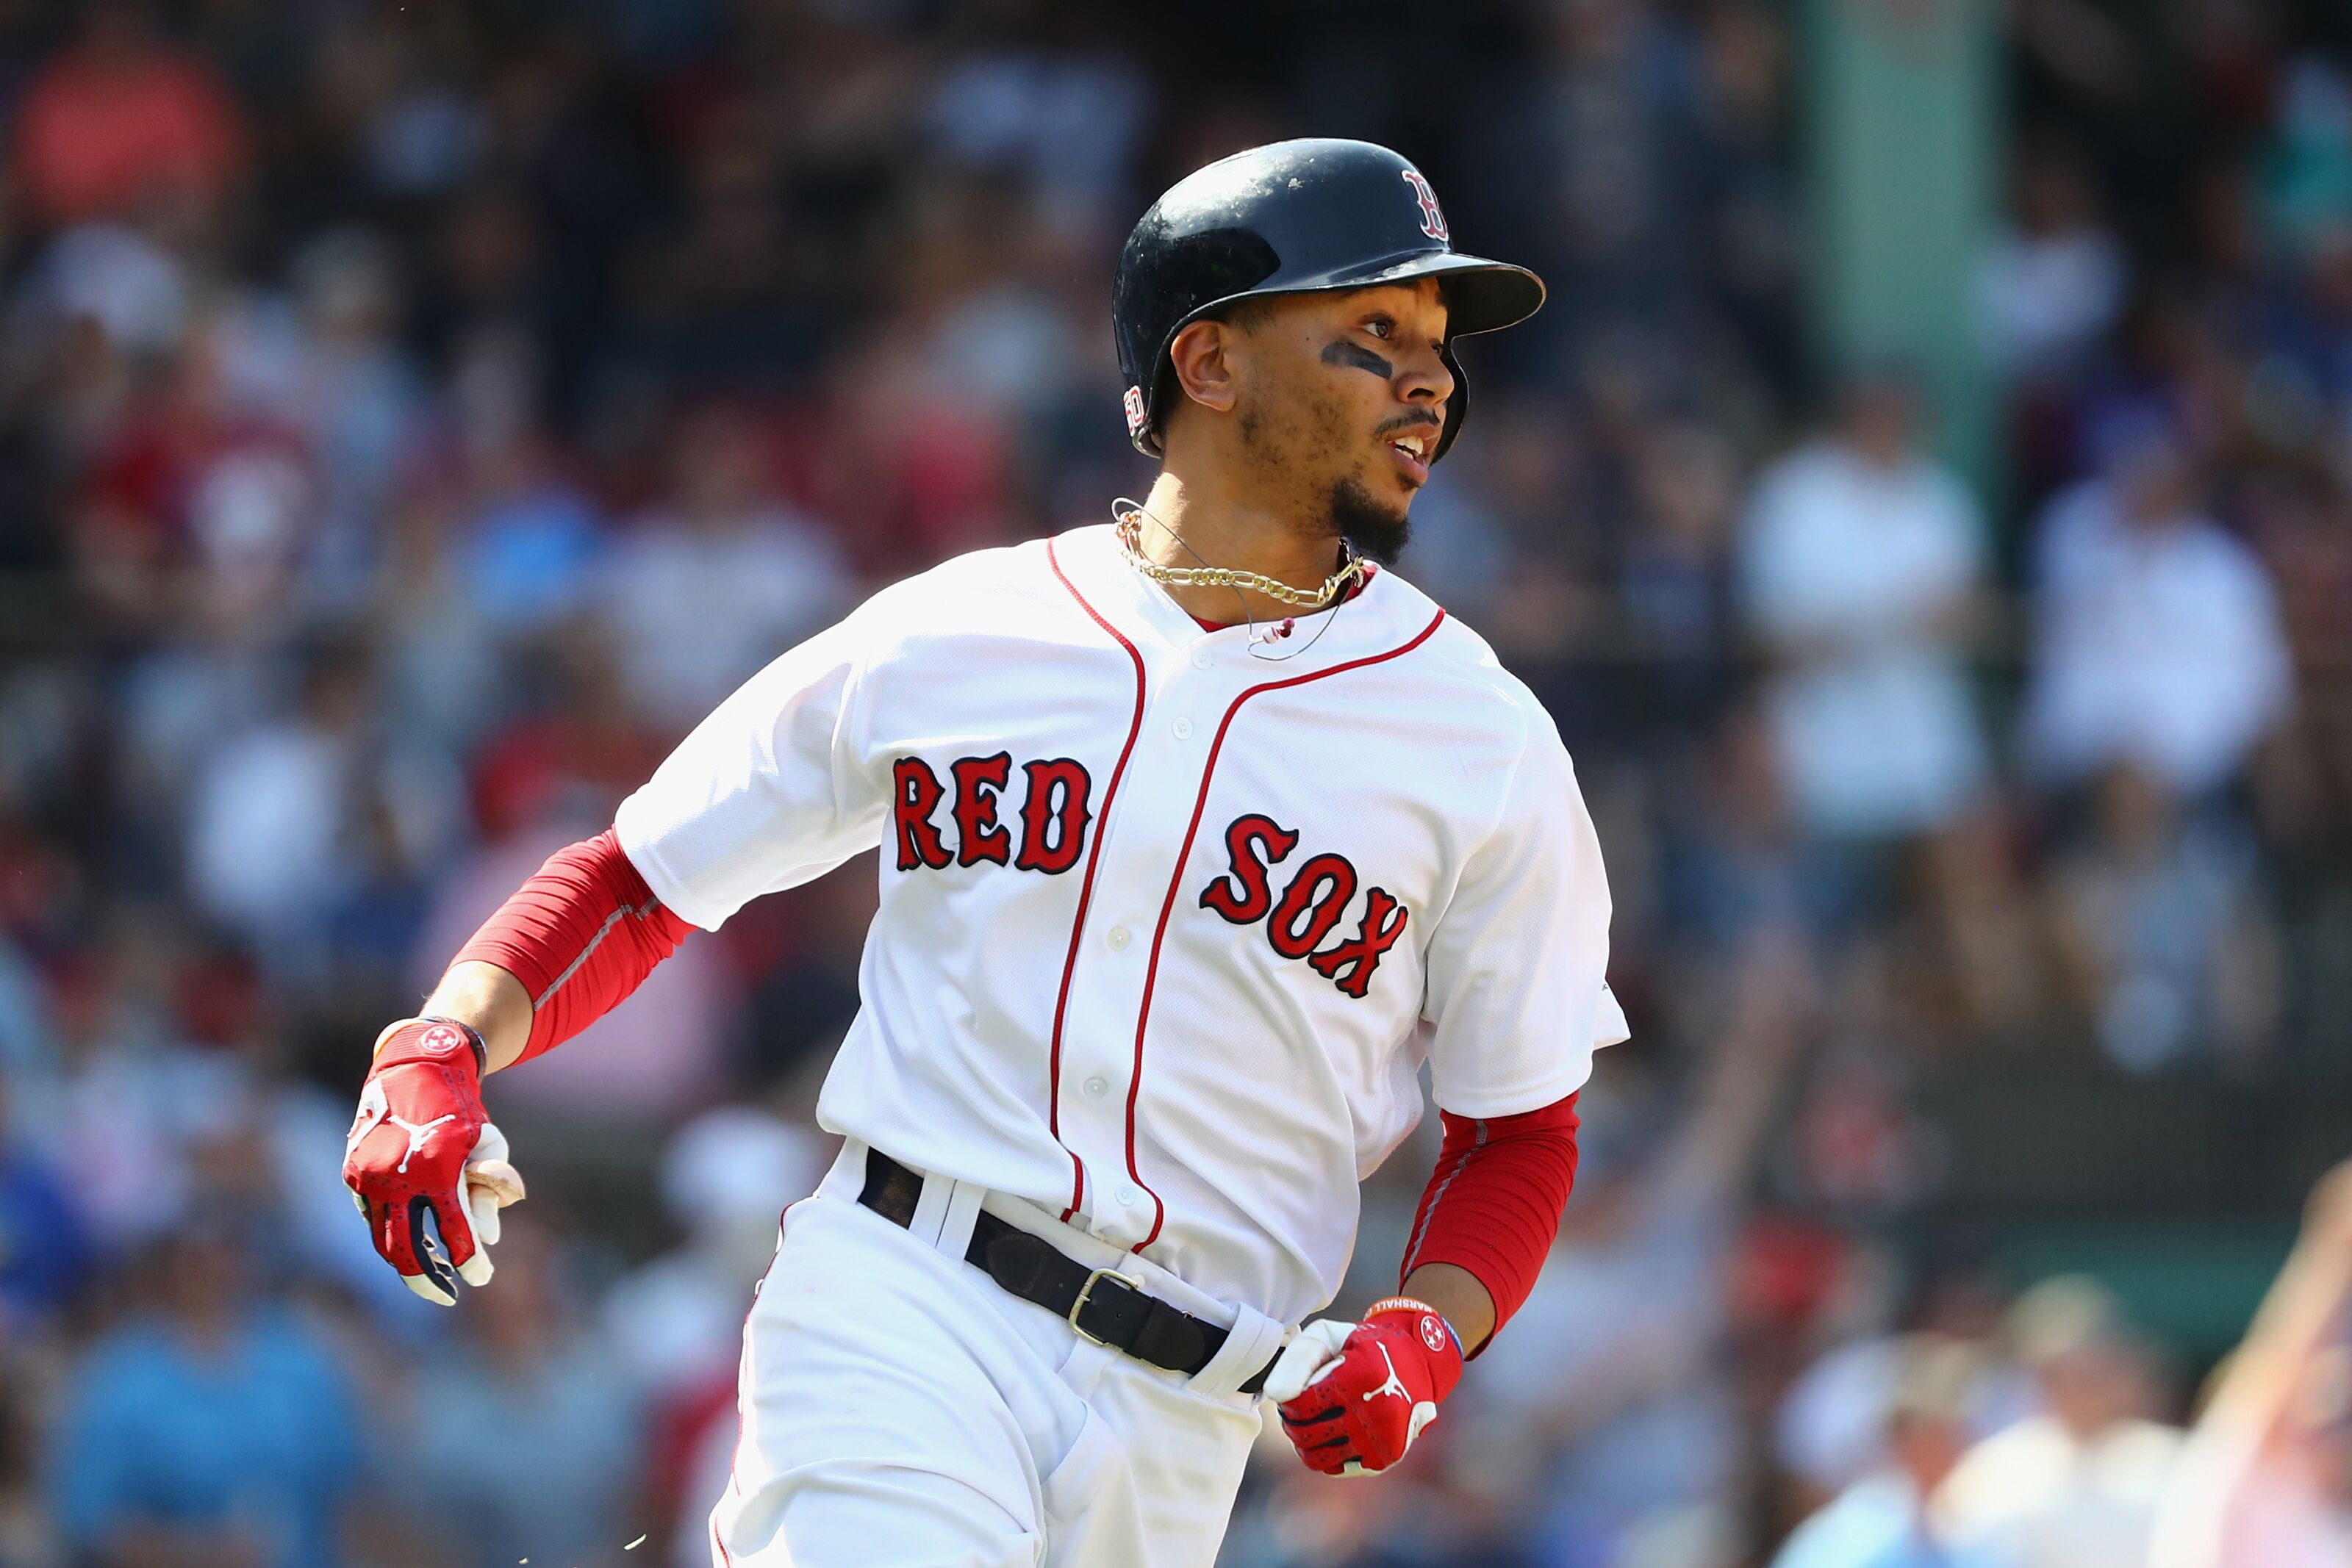 Red Sox Outfielder Mookie Betts Due For A Dusting Following